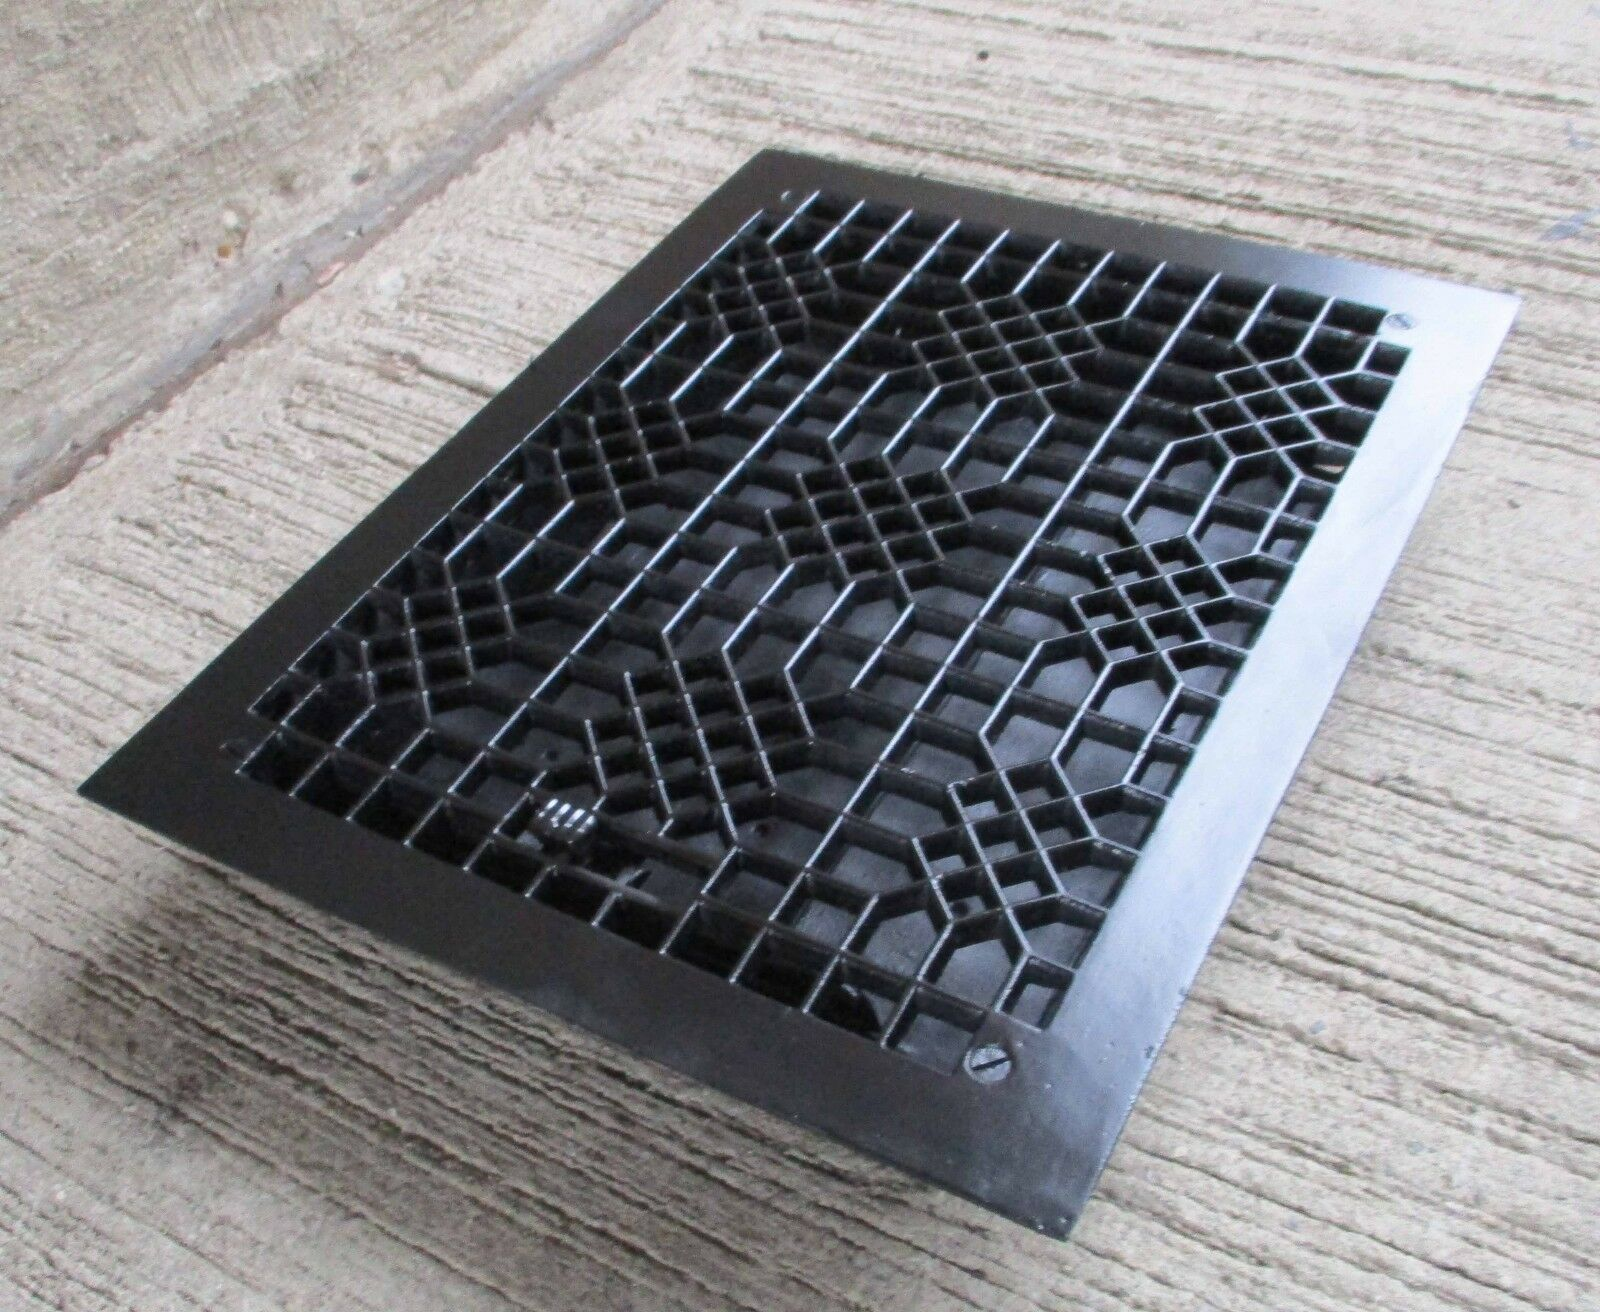 "Antique all Cast Iron Floor Grate w/louvers -Refinished- Black- [16"" x 12""] (#6)"